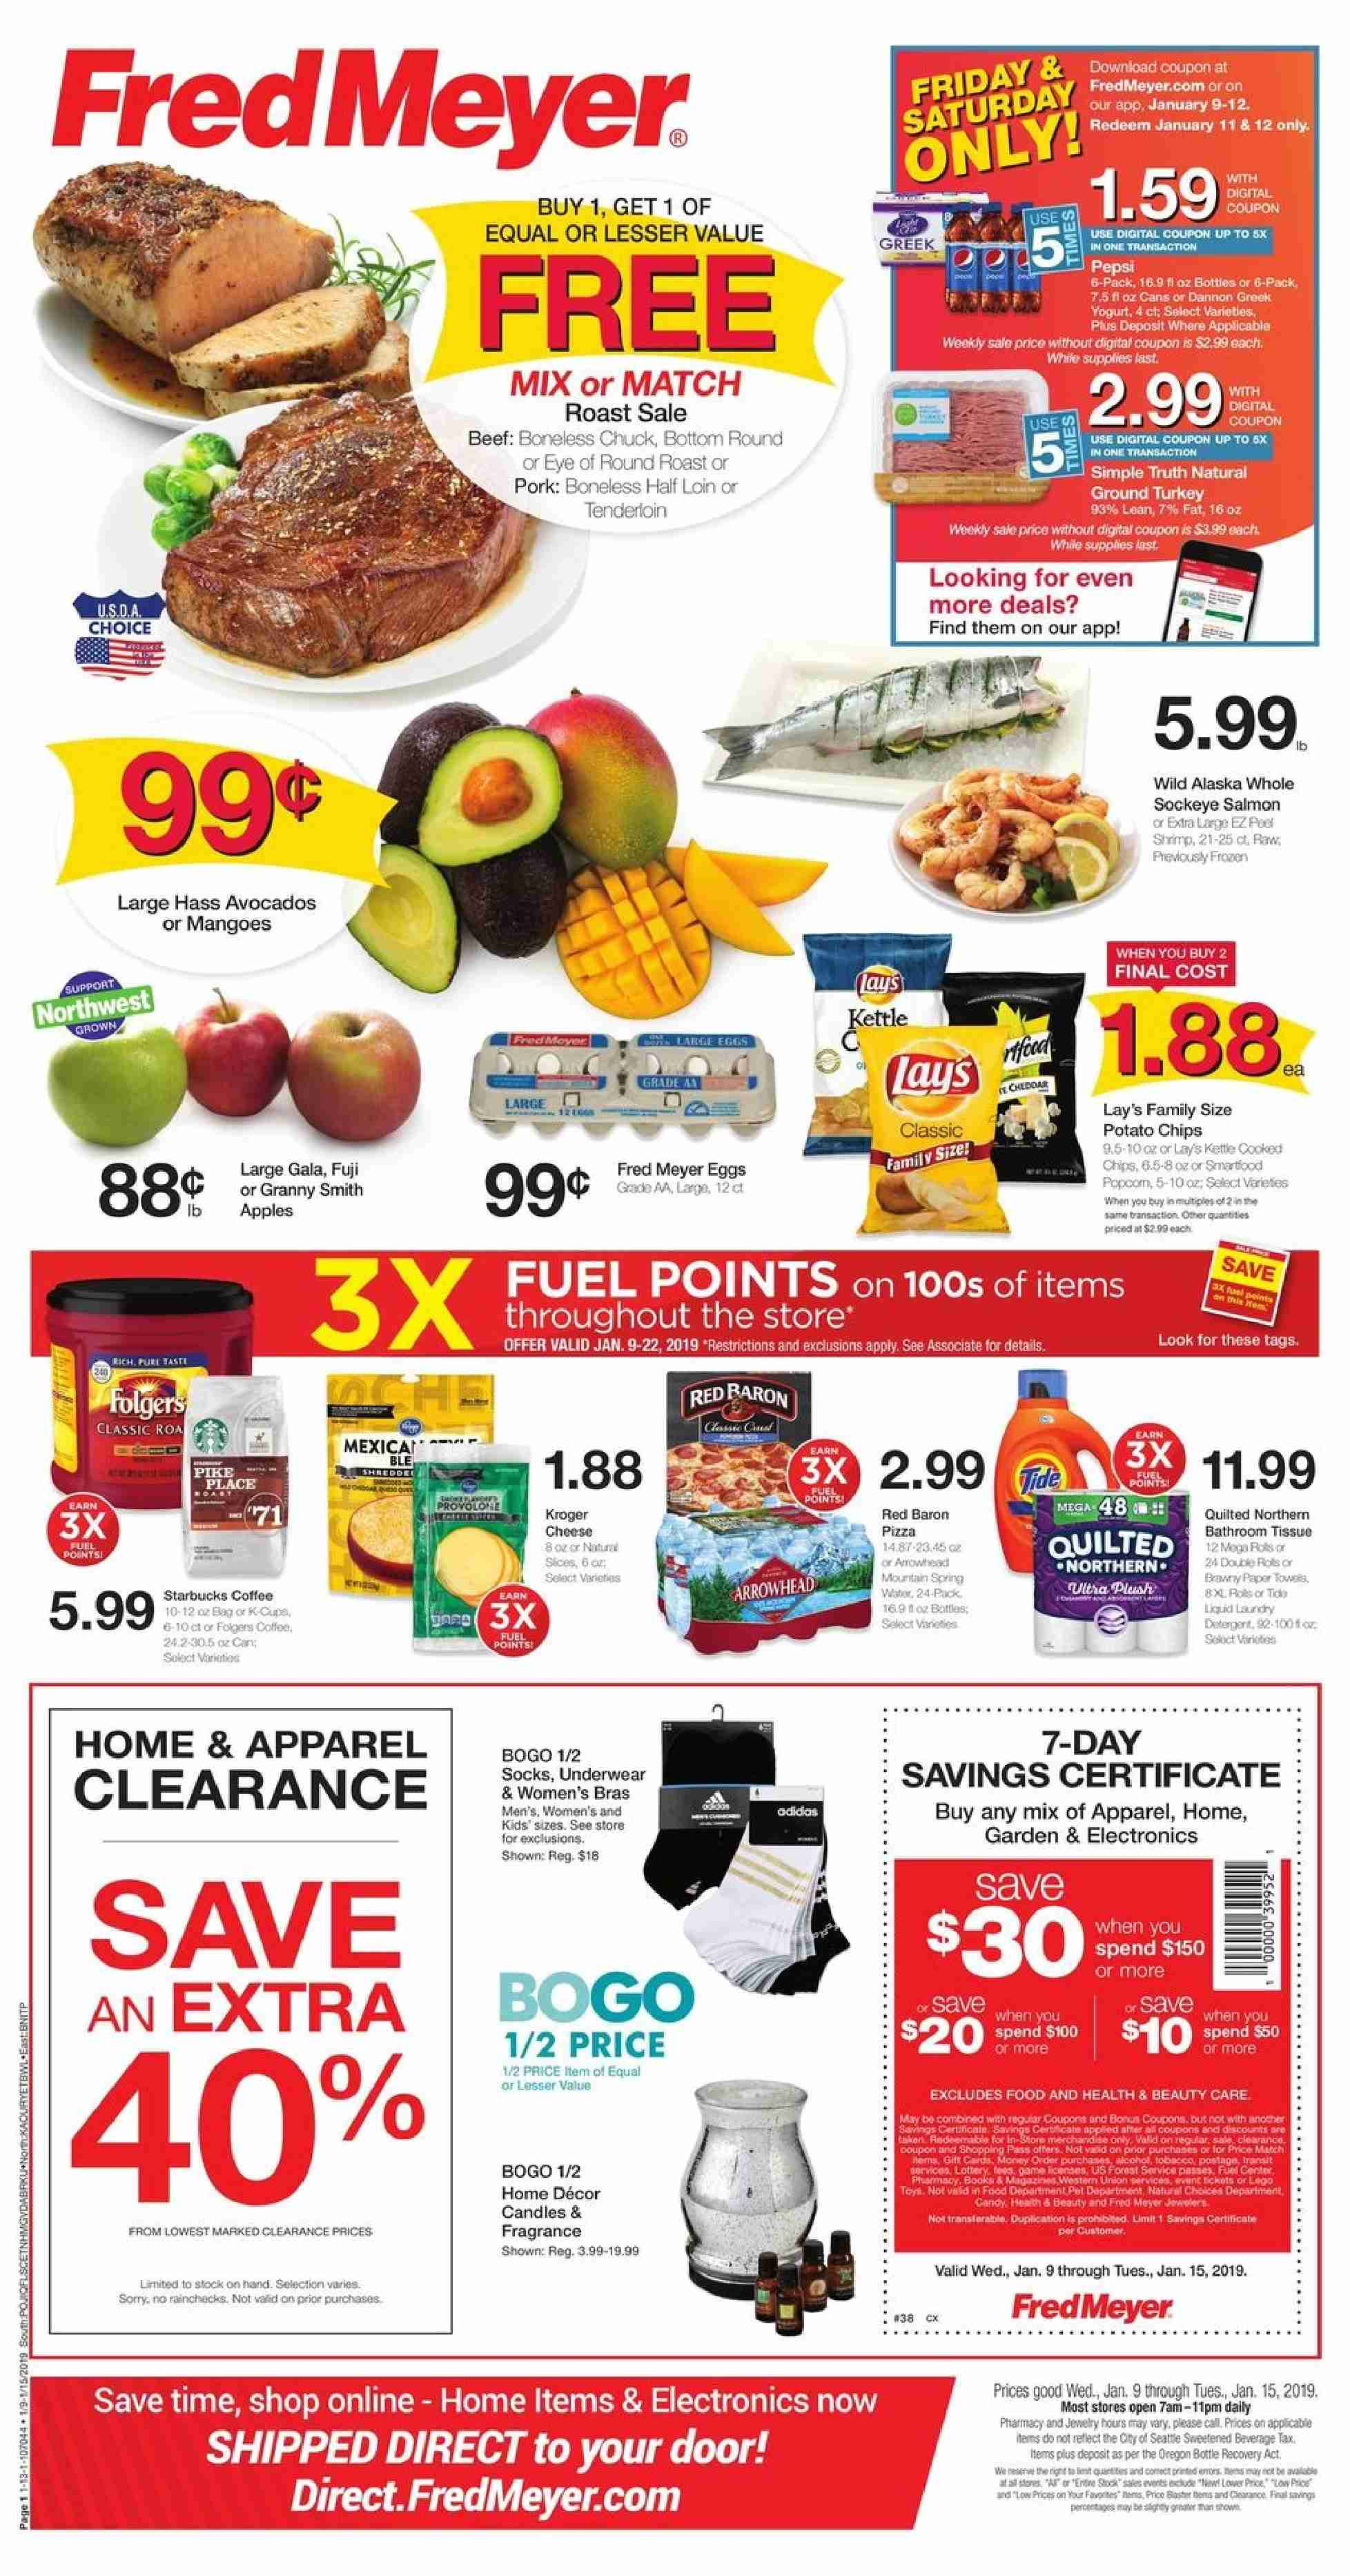 Fred Meyer Flyer - 01.09.2019 - 01.15.2019 - Sales products - apparel, avocado, beef meat, bottle, bottom, bra, candle, door, eggs, fragrance, fuel, mango, socks, tee, towel, underwear, pork meat, potato chips, paper towel, chips, candy, game, paper, jewelry, quilted northern. Page 1.